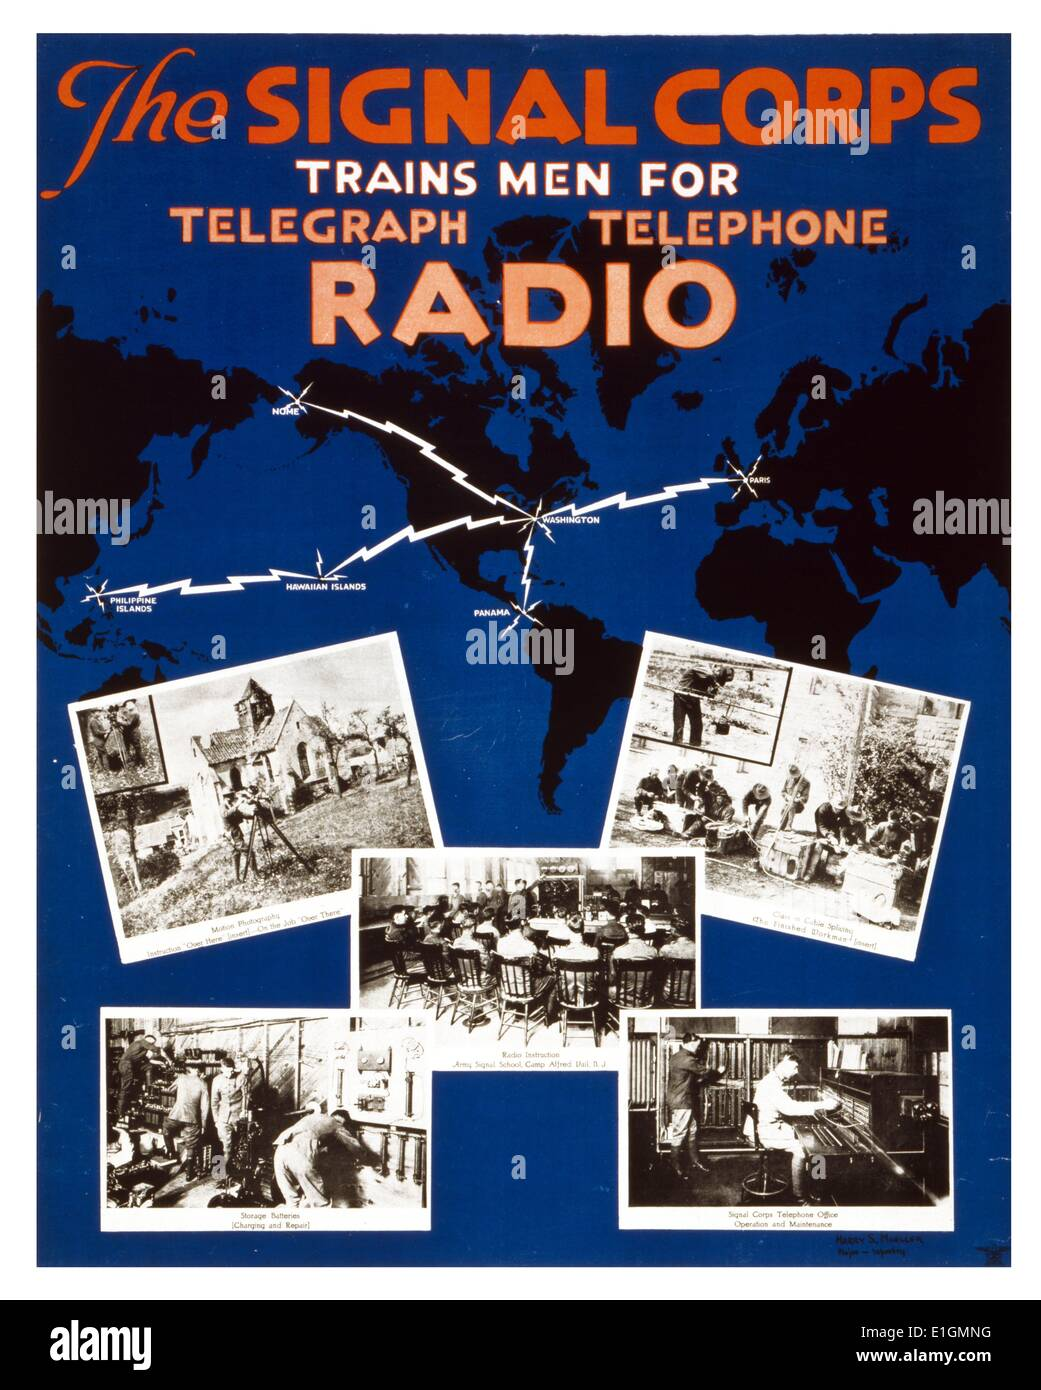 U.S. Army Signal Corps recruiting poster - Stock Image